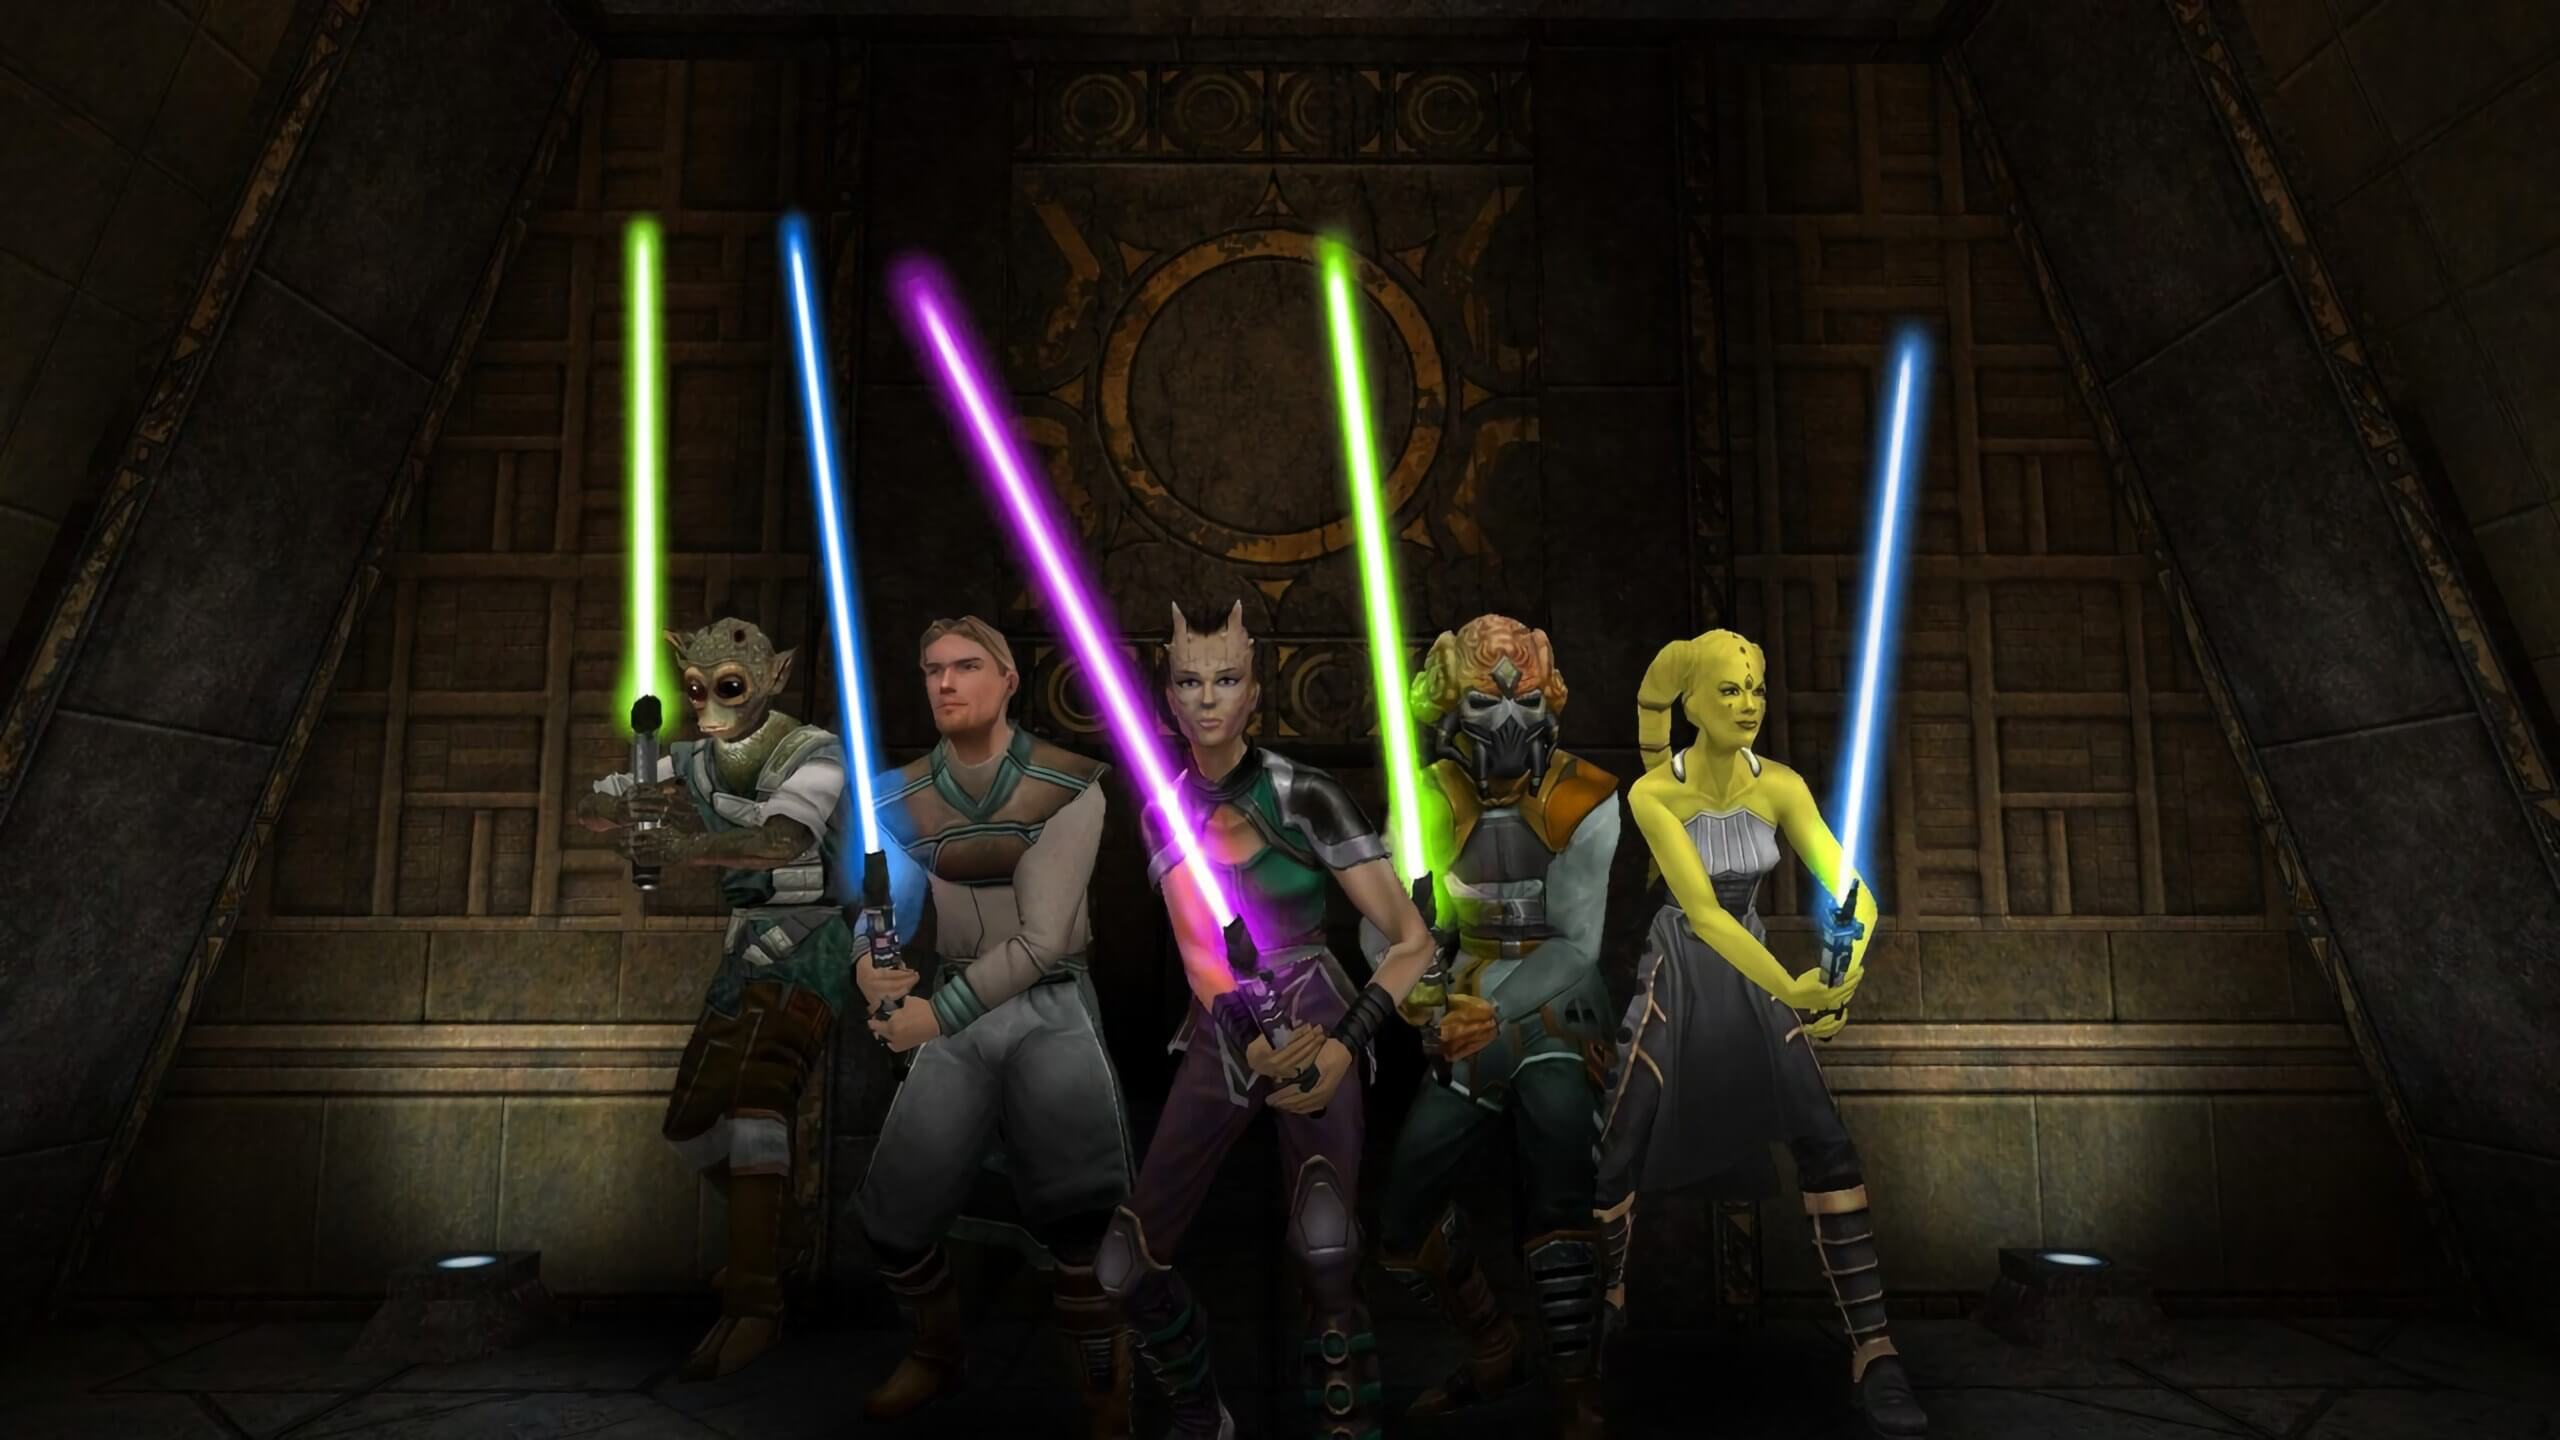 The PC master race is 'decimating' Switch players in Jedi Academy crossplay